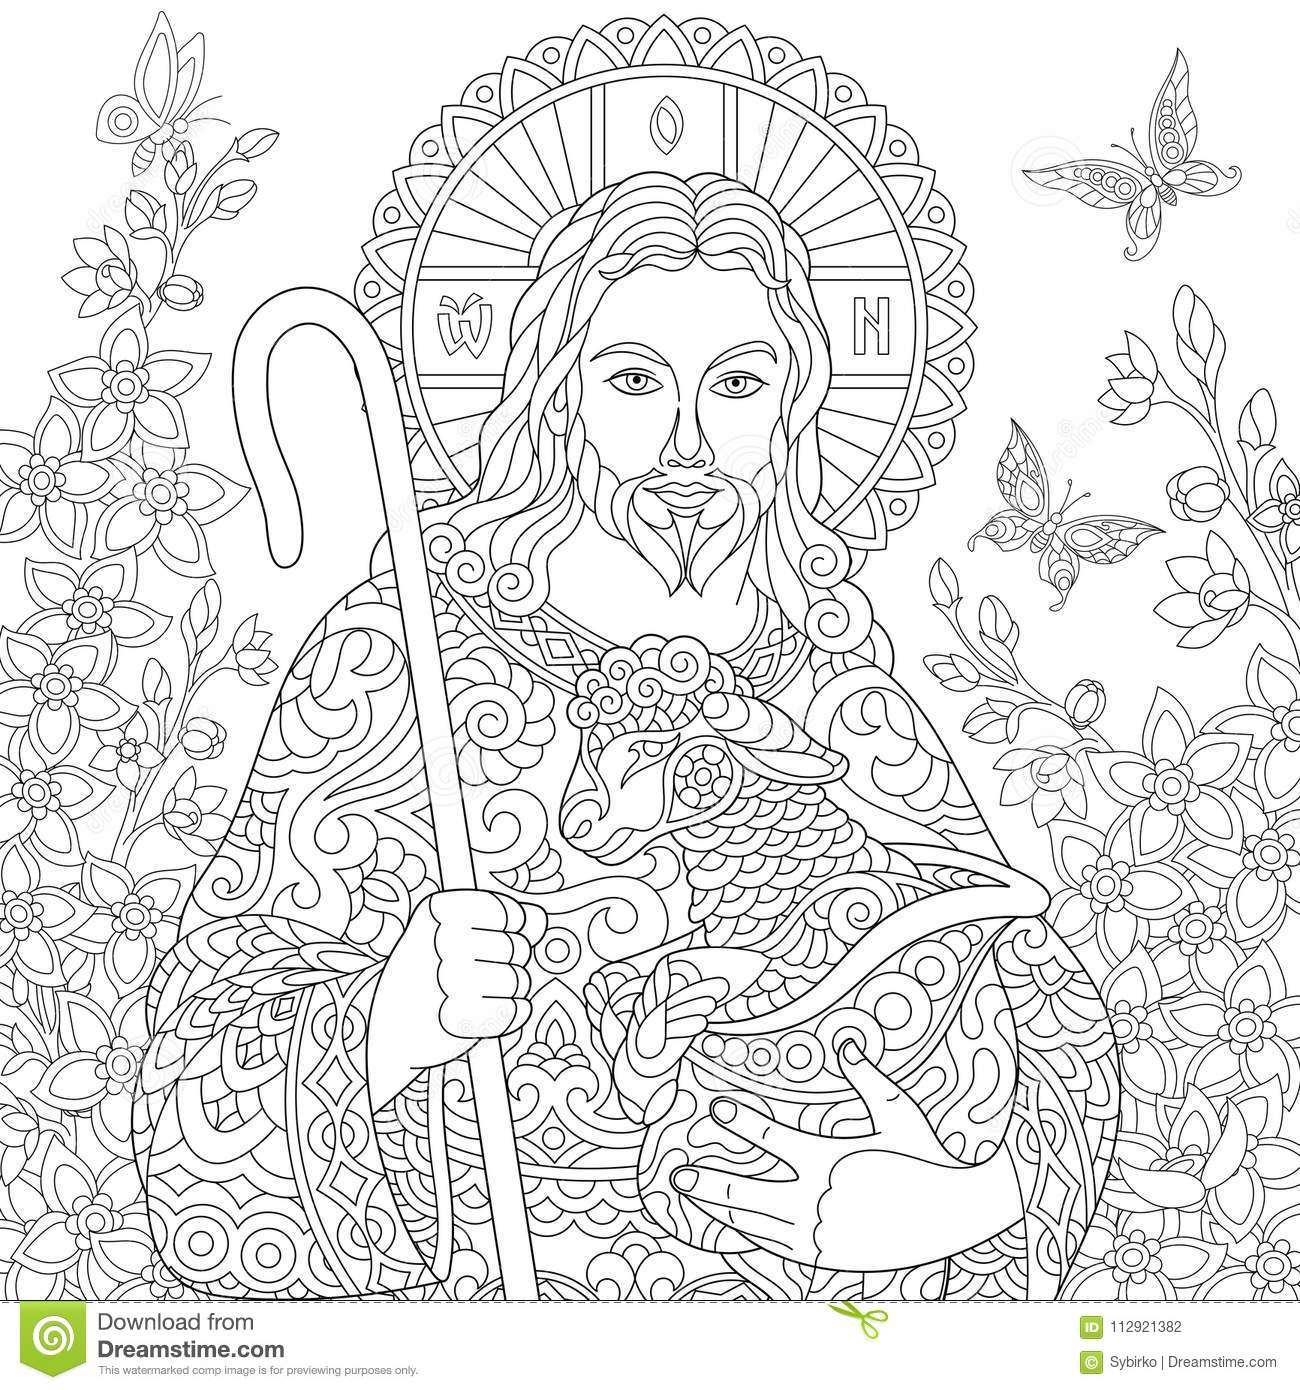 Free Free Religious Easter Coloring Pages, Download Free Clip Art ... | 1390x1300